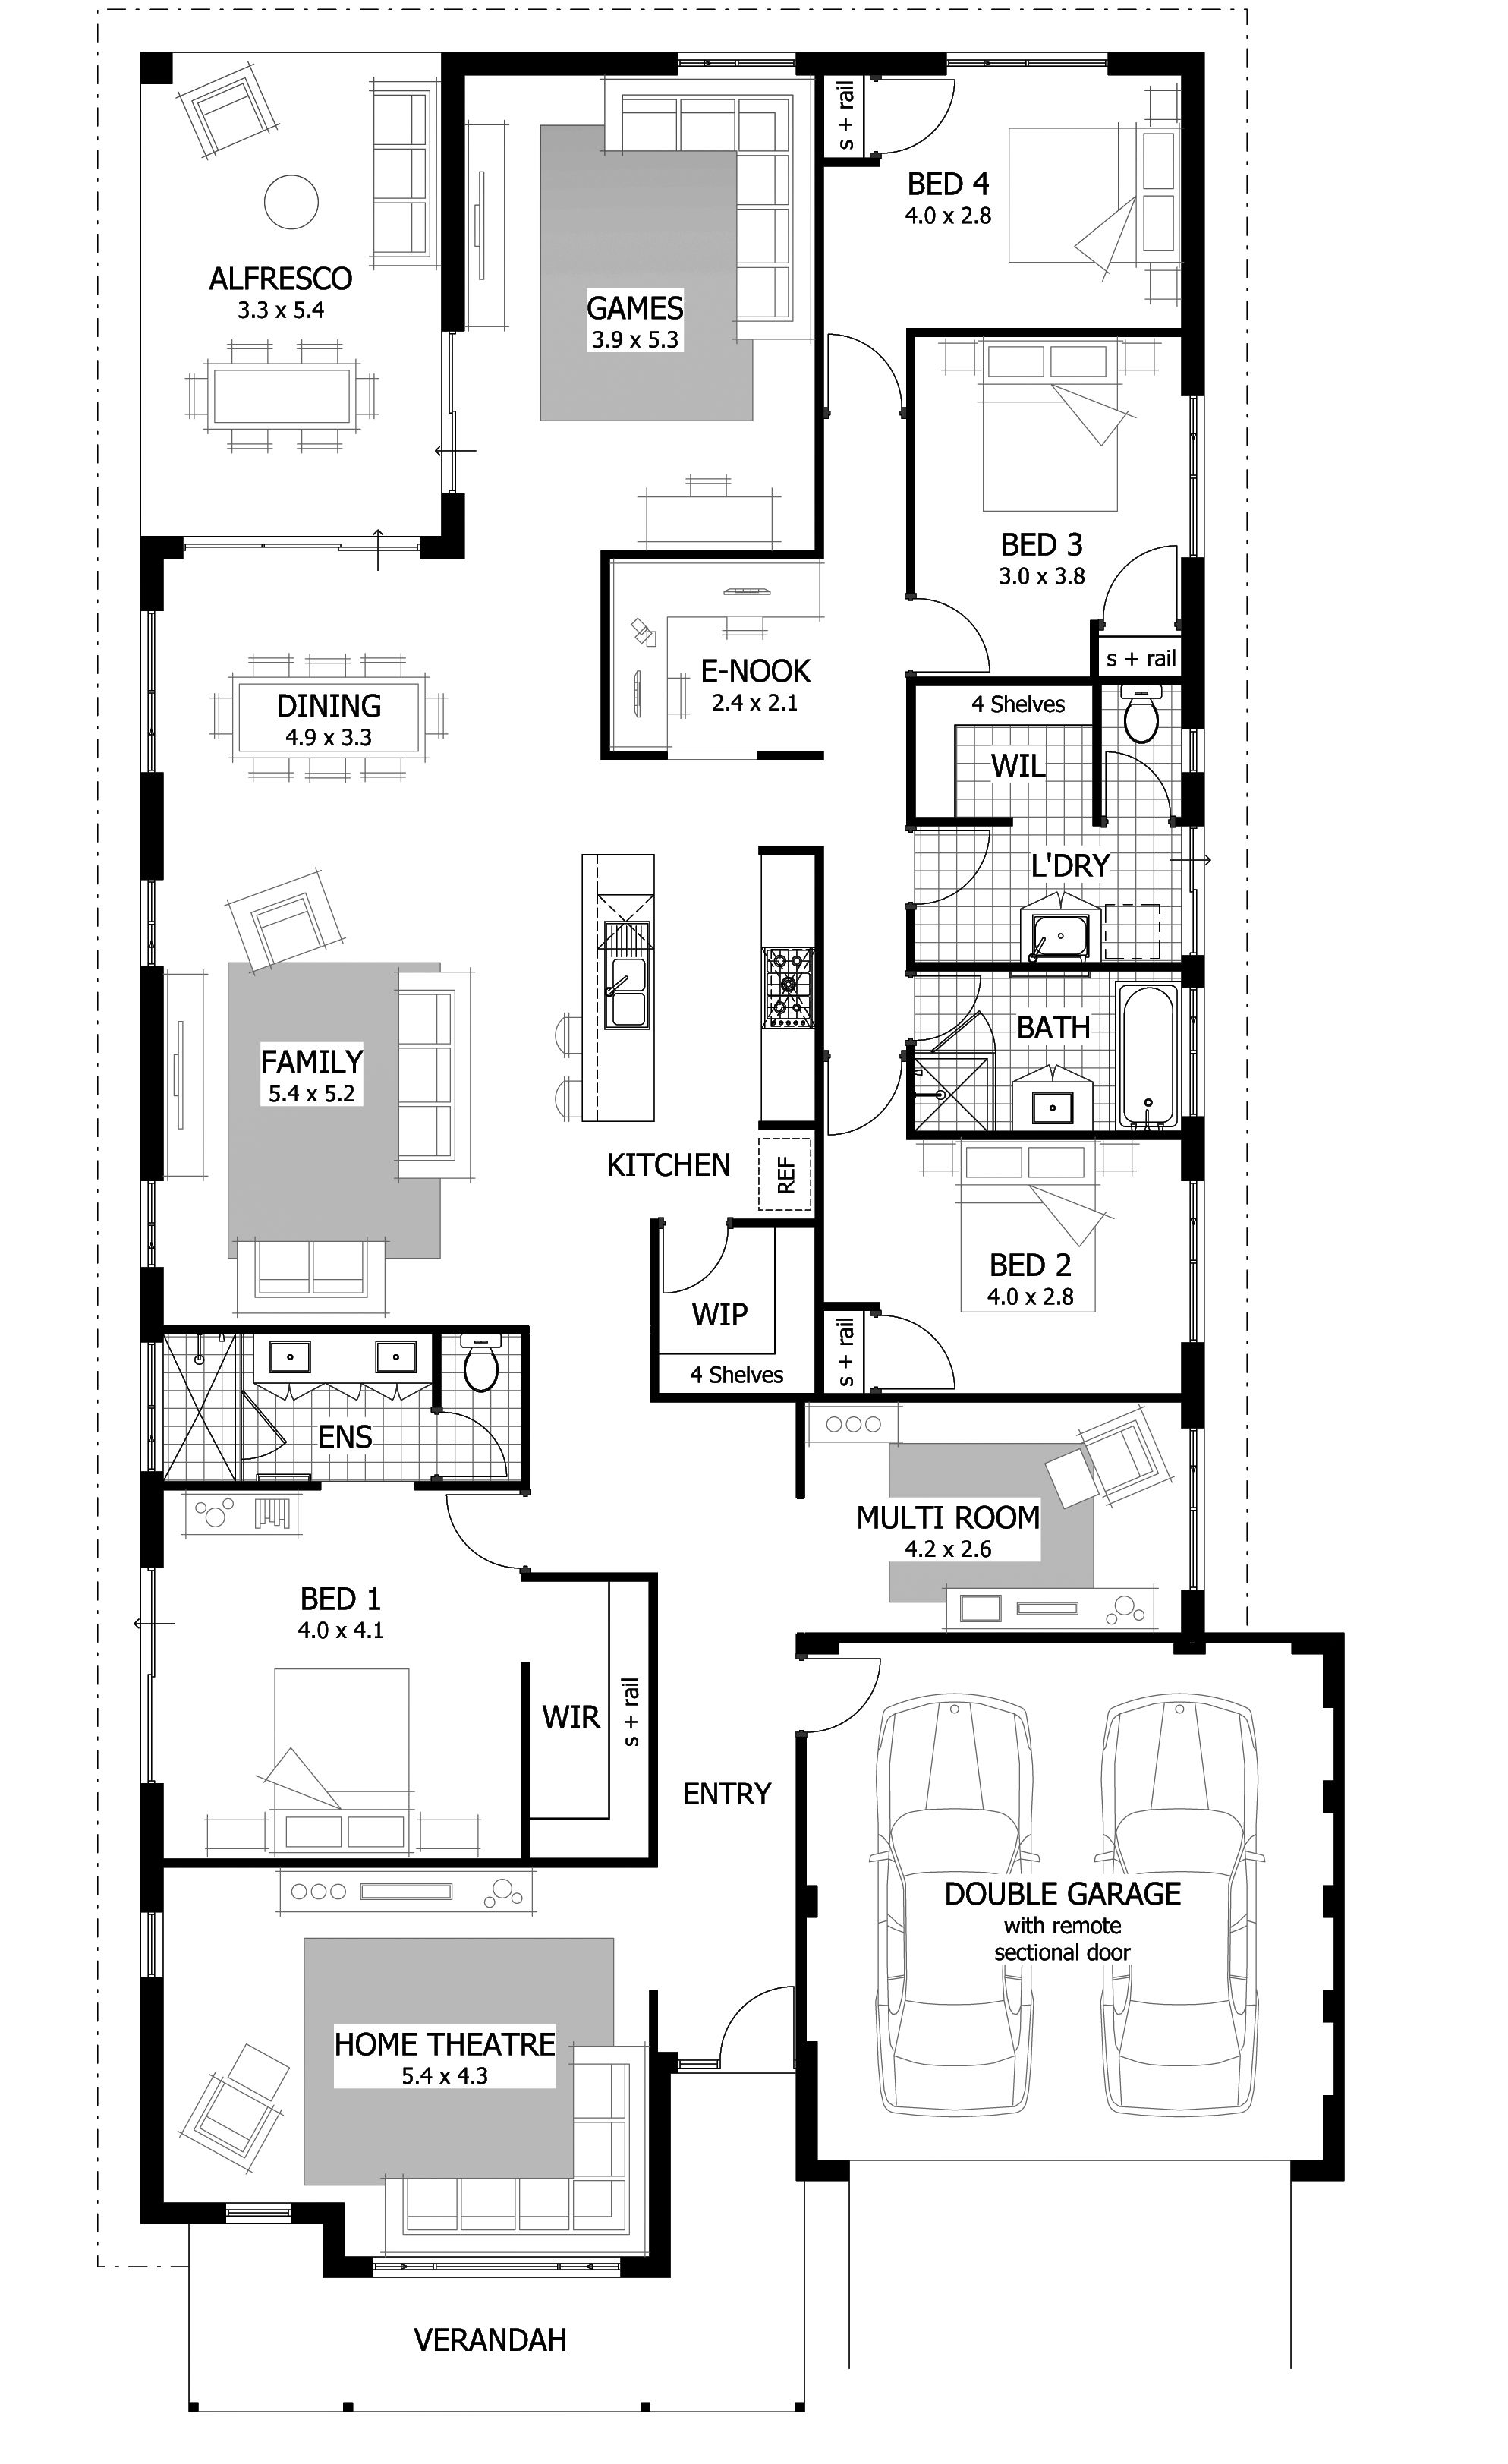 house designs perth new single storey home designs with some changes dreaming pinterest floor plans perth and house design